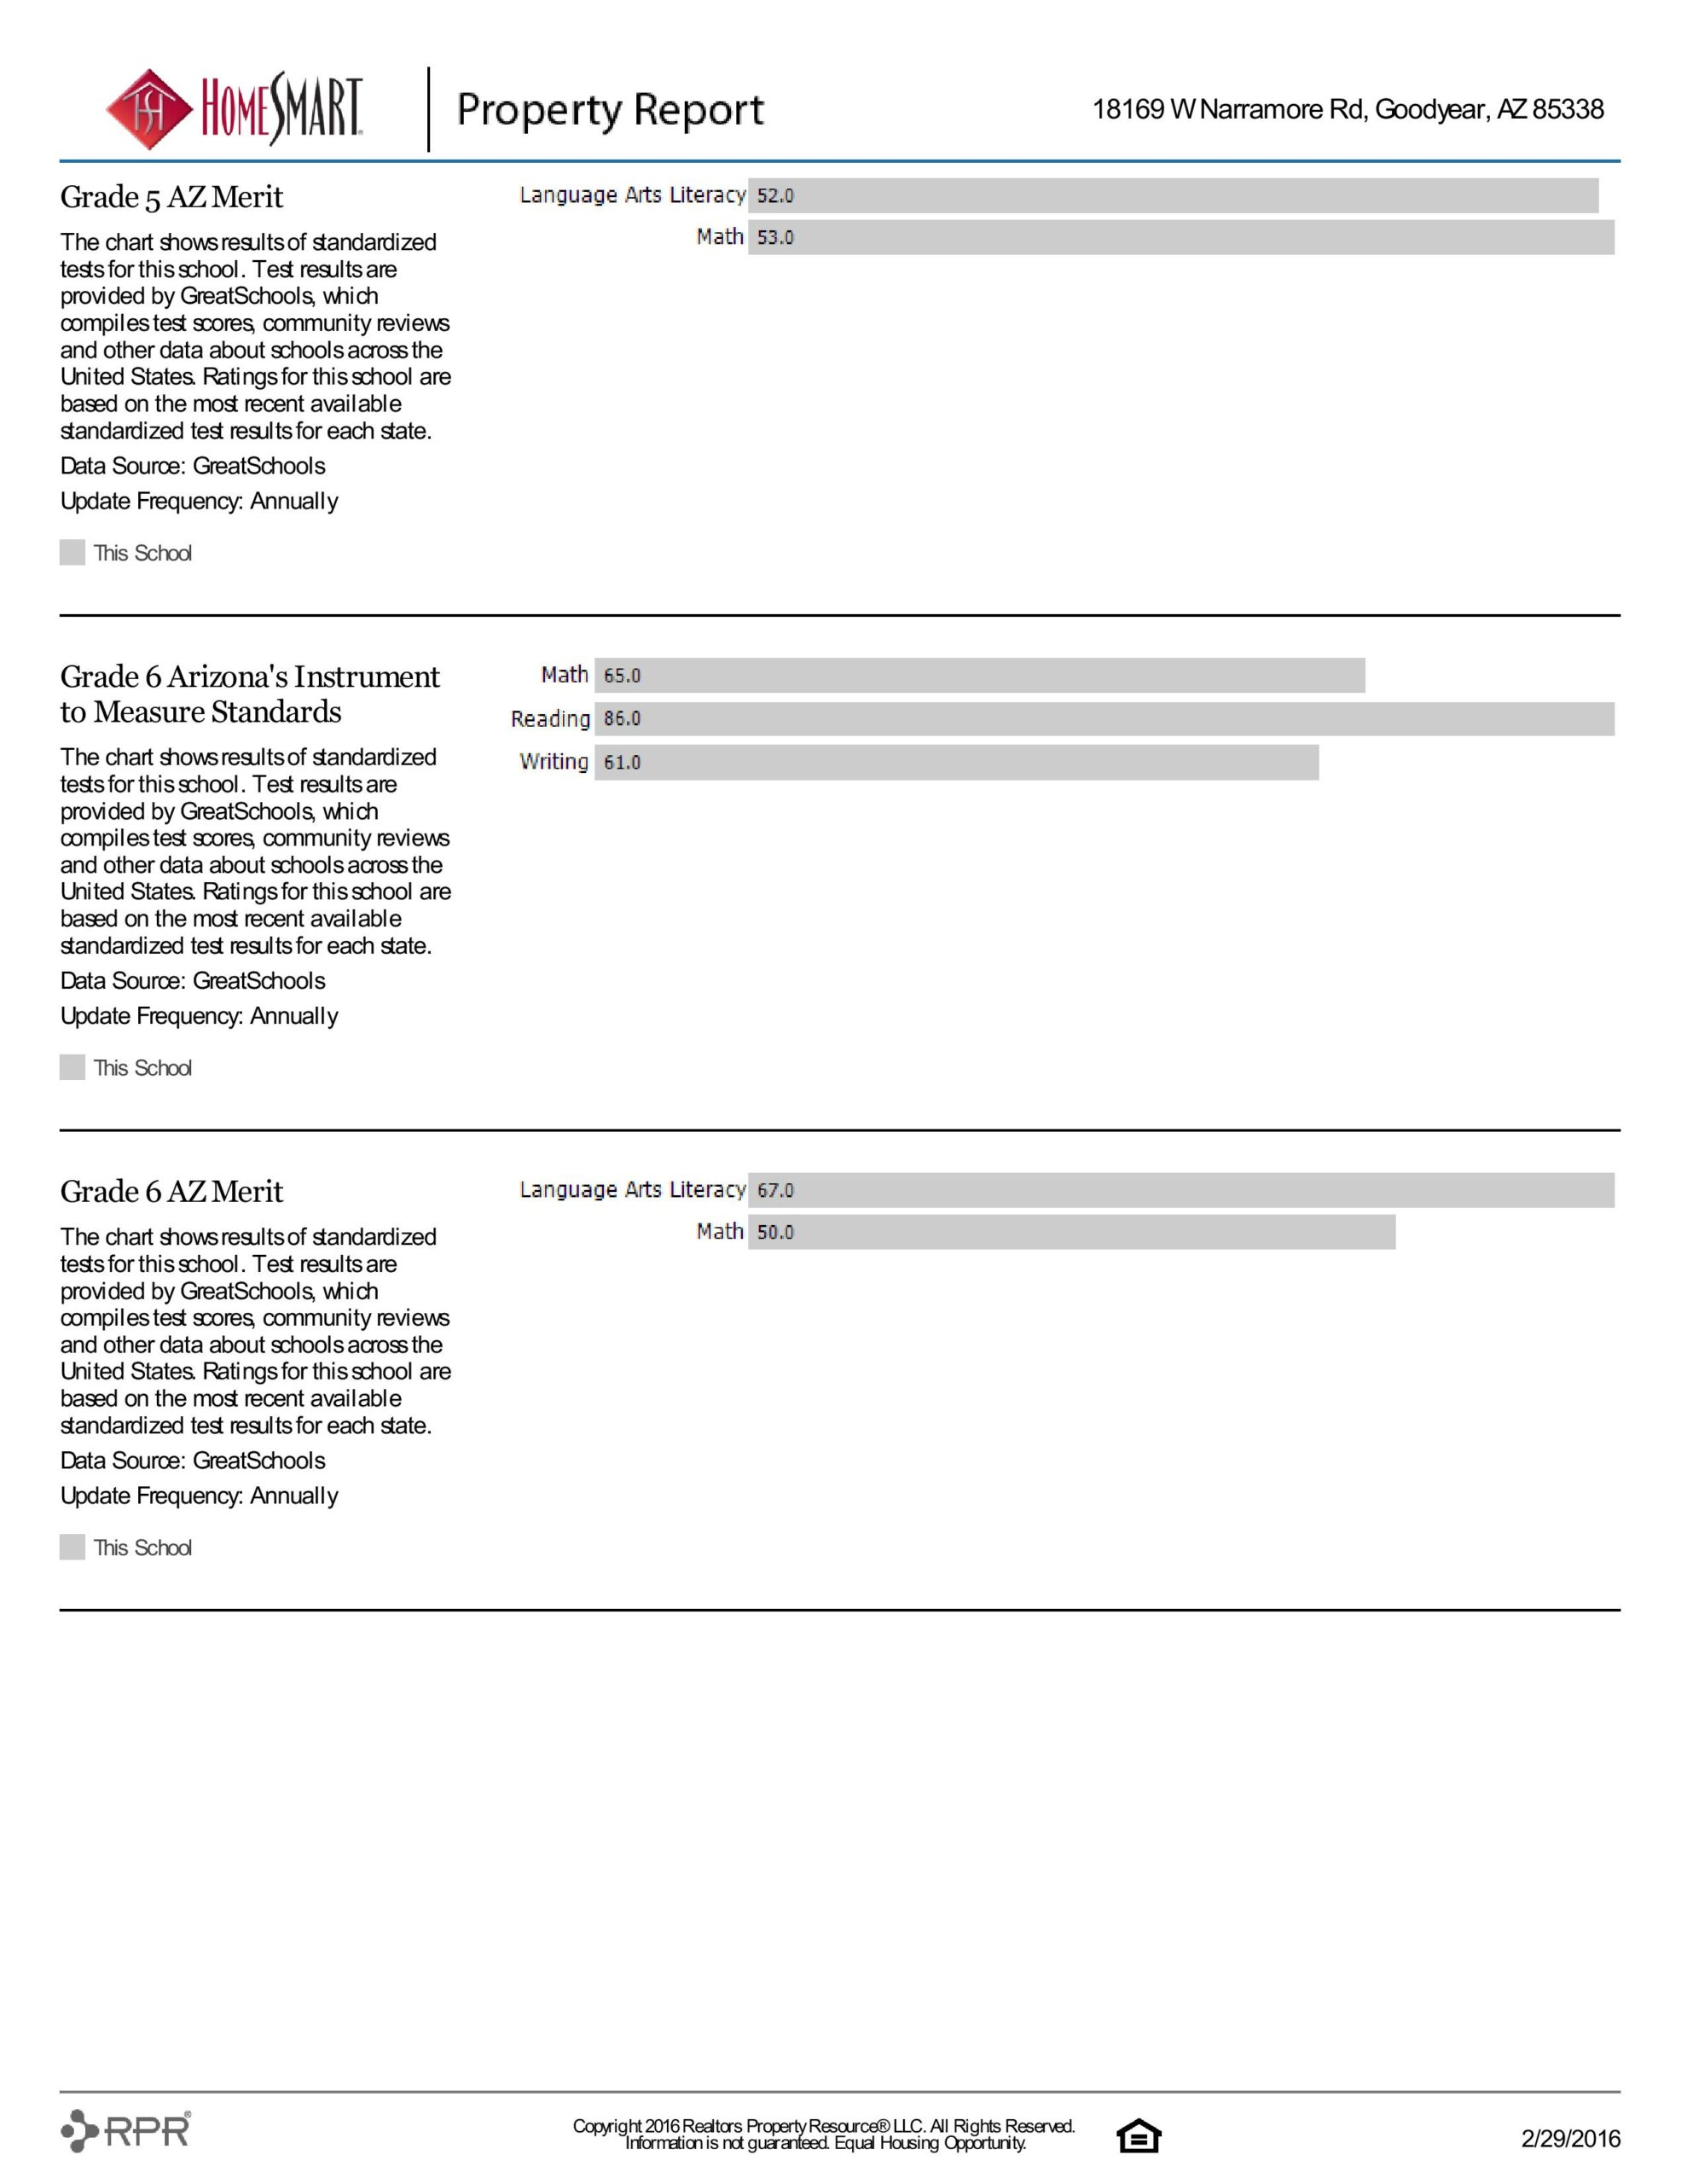 18169 W NARRAMORE RD PROPERTY REPORT-page-032